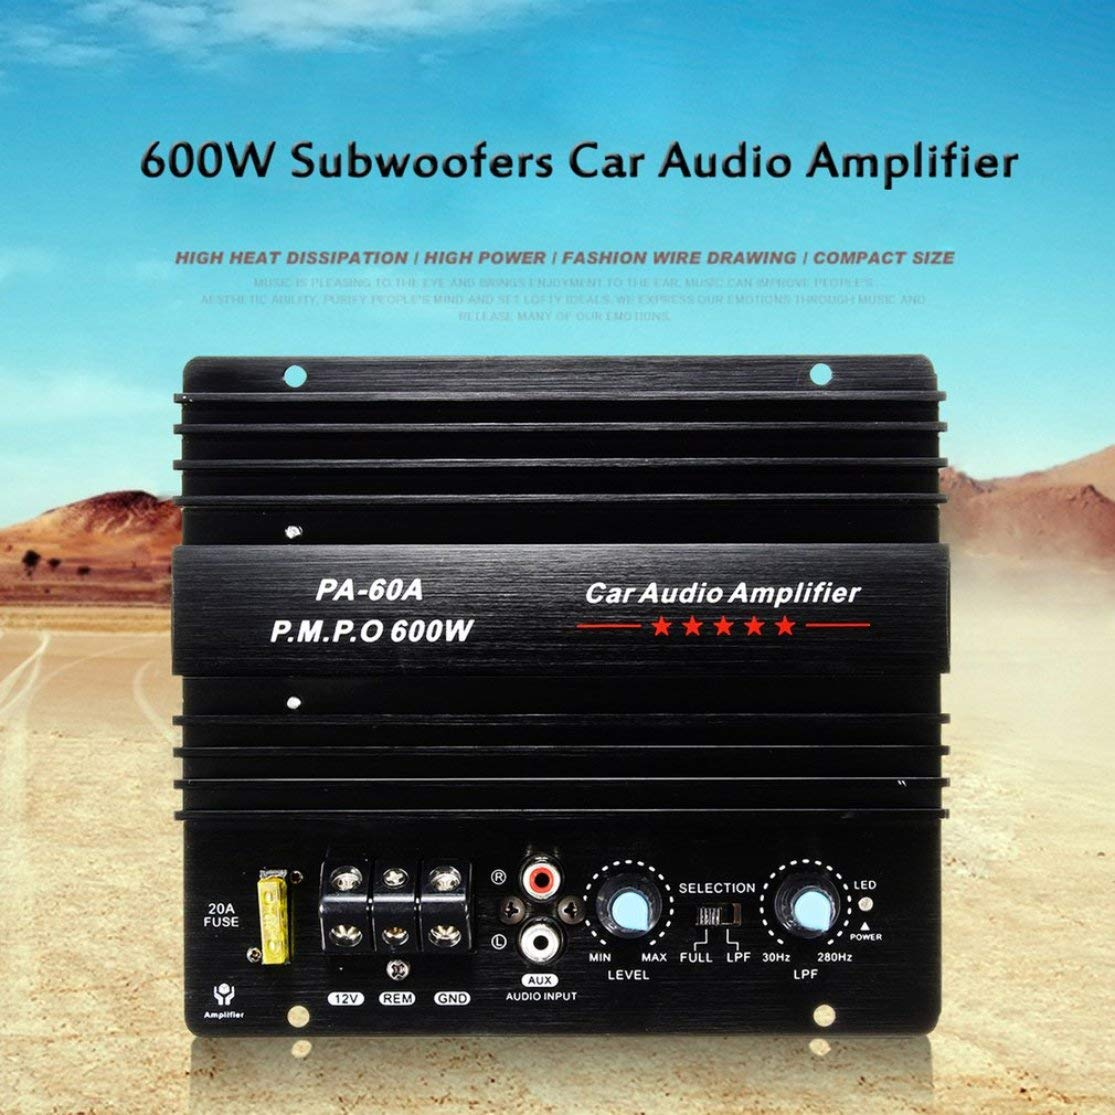 12v Mono 600w High Power Car Audio Amplifier Pa 60a Subwoofer Circuit Tda7294 Bass Amp Fashion Wire Drawing Powerful Subwoofers With 20a Fuse Electronics